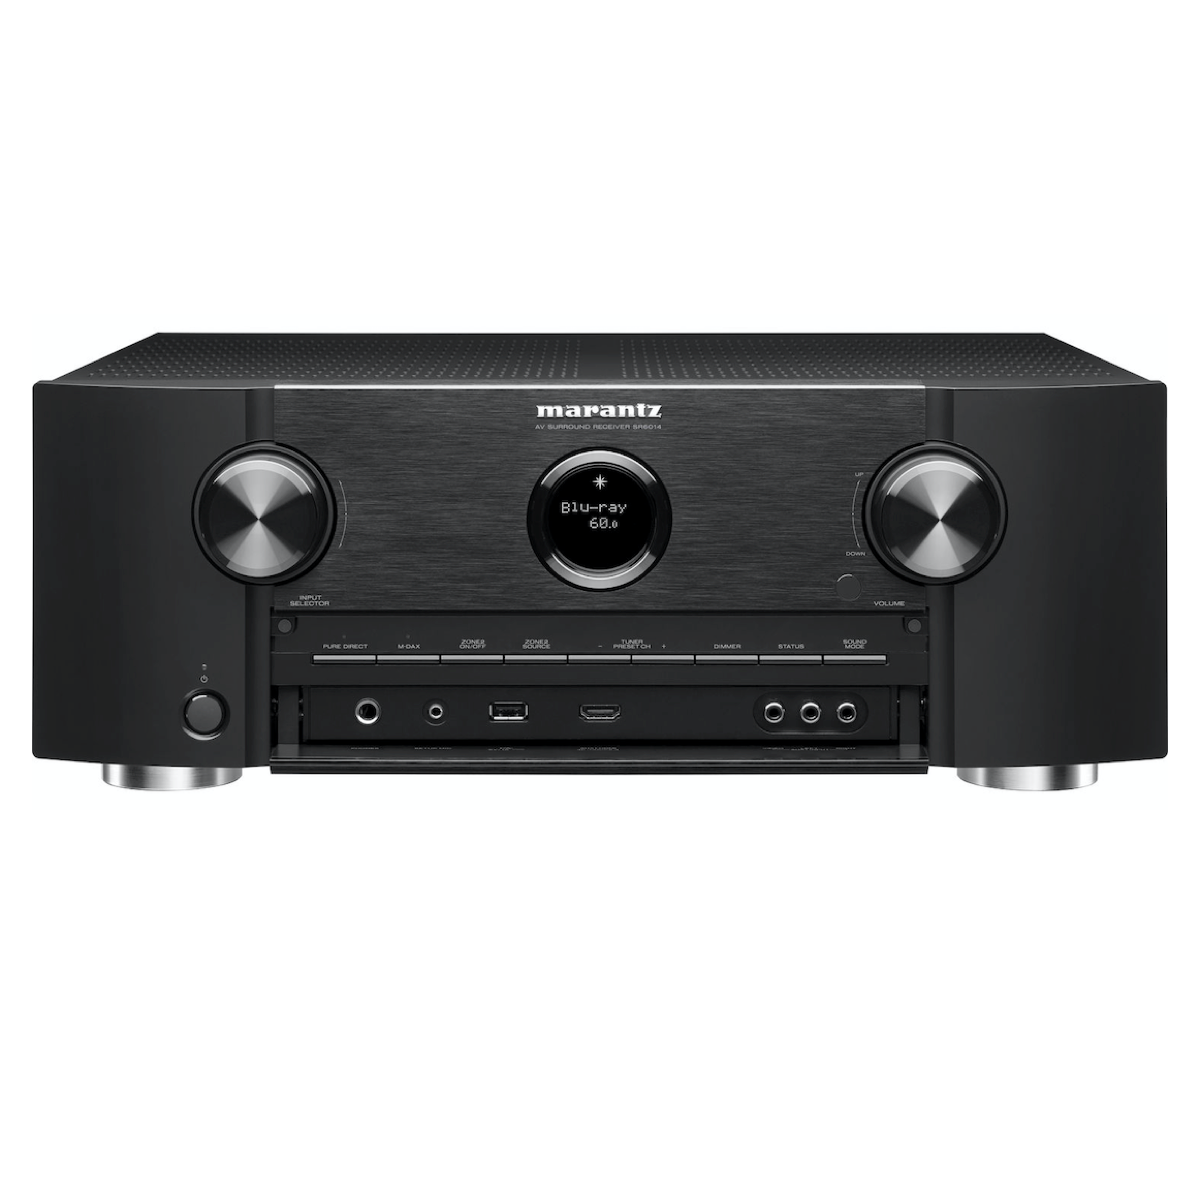 Marantz SR6014 - 9.2 Channel AV Receiver, Marantz, AV Receiver - AVStore.in